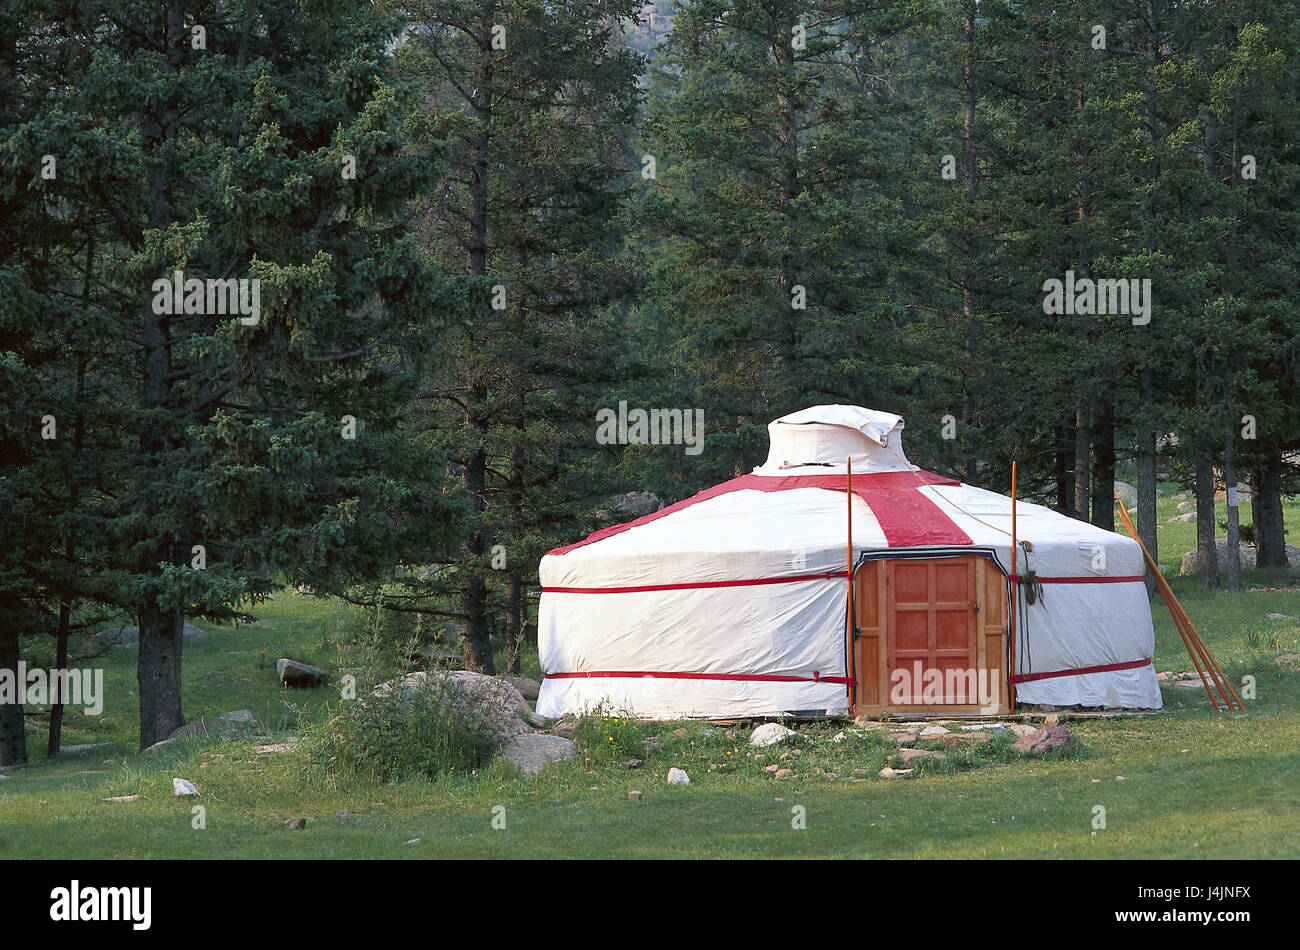 Mongolia, province of Tov, cloister of Manshir, edge of the forest, Jurte Central Asia, wood, Ger, tent, round tent, - Stock Image